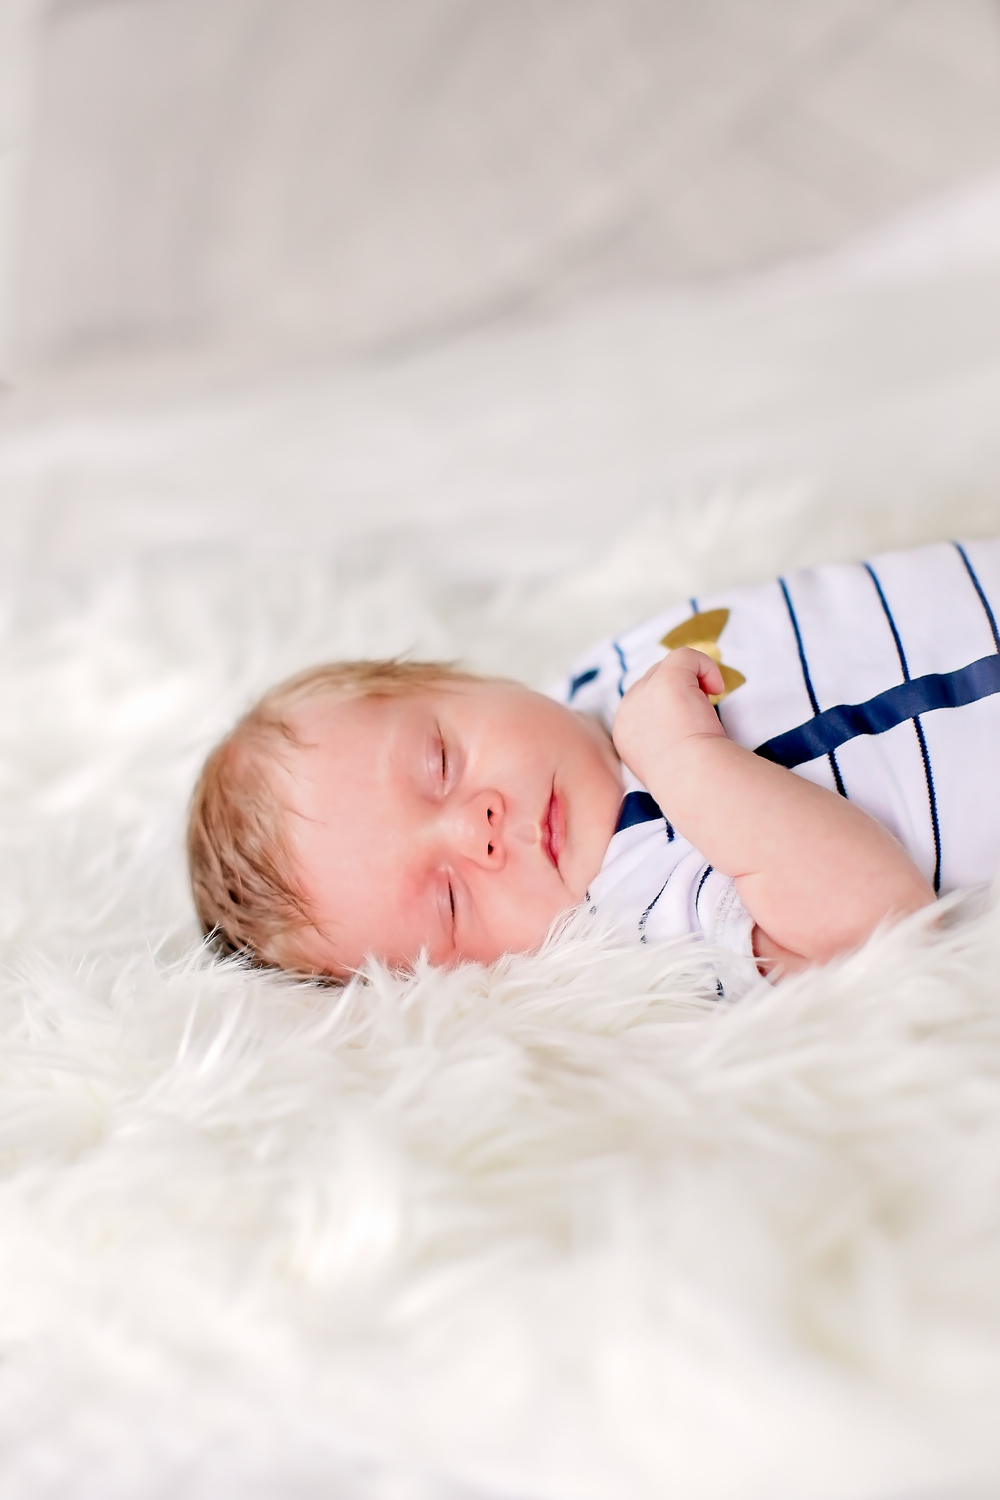 Brisbane Newborn photographer - Raw Design Media